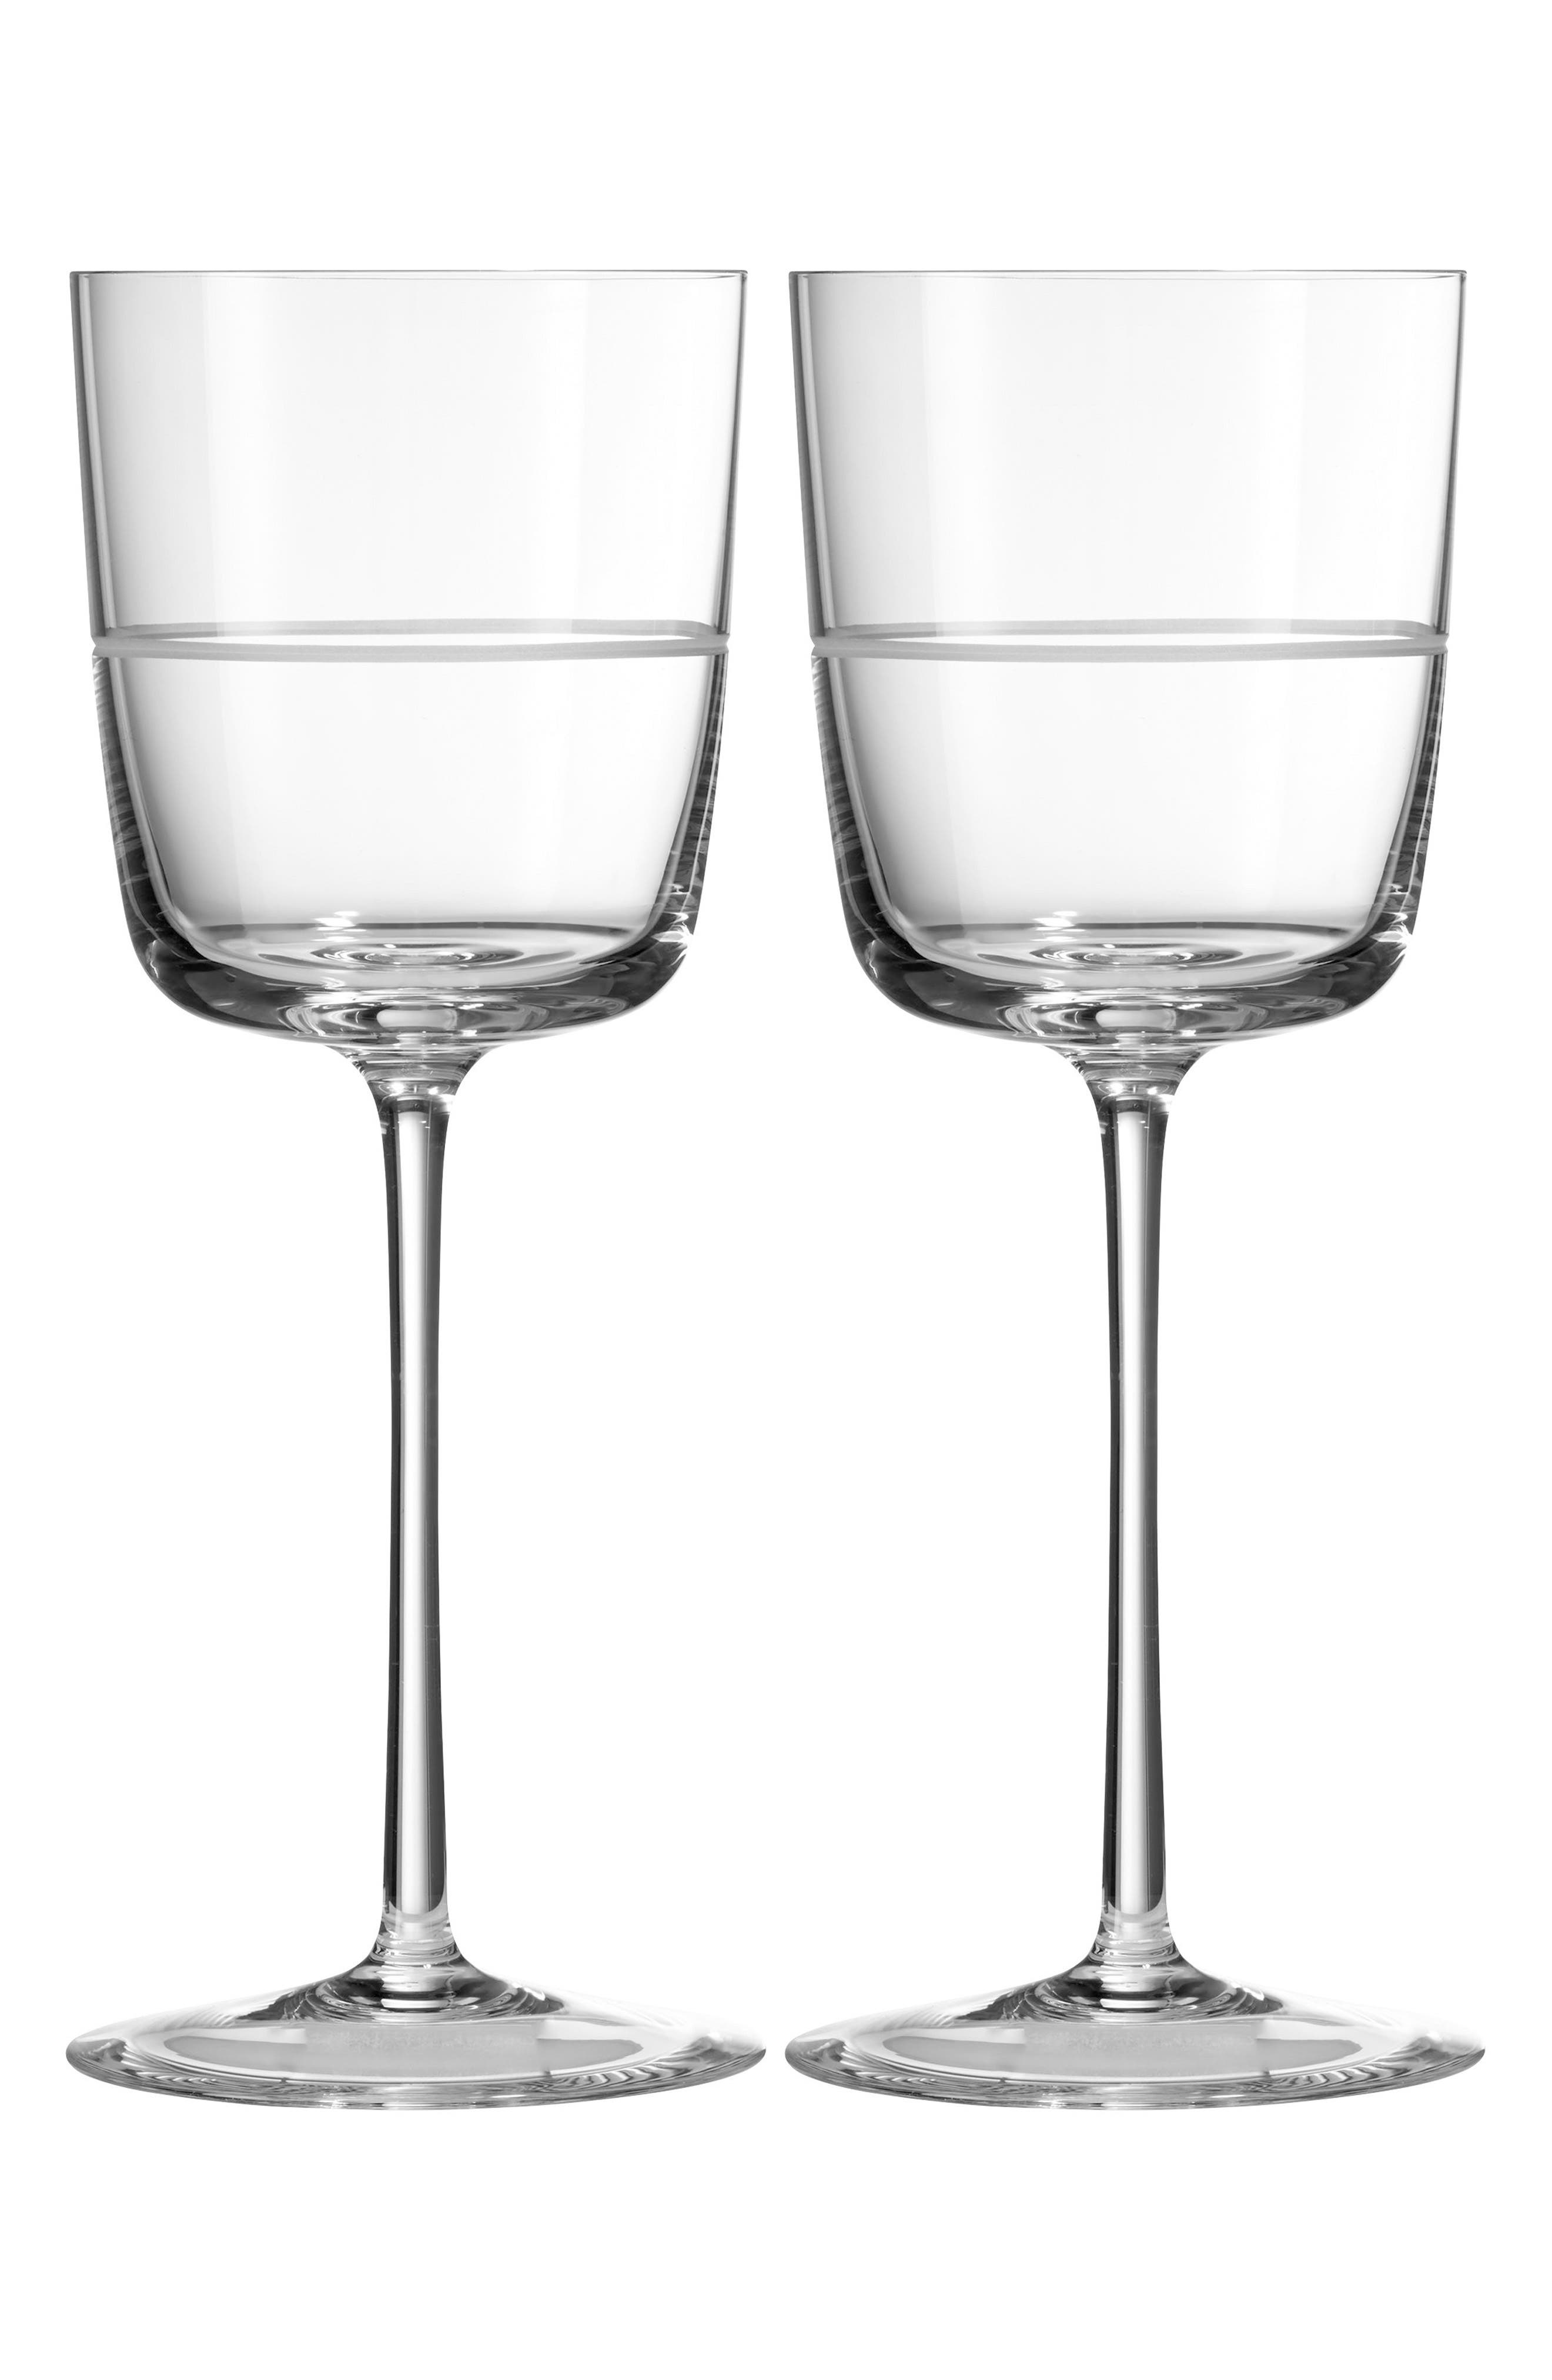 Vera Wang x Wedgwood Vera Bande Set of 2 Wine Glasses